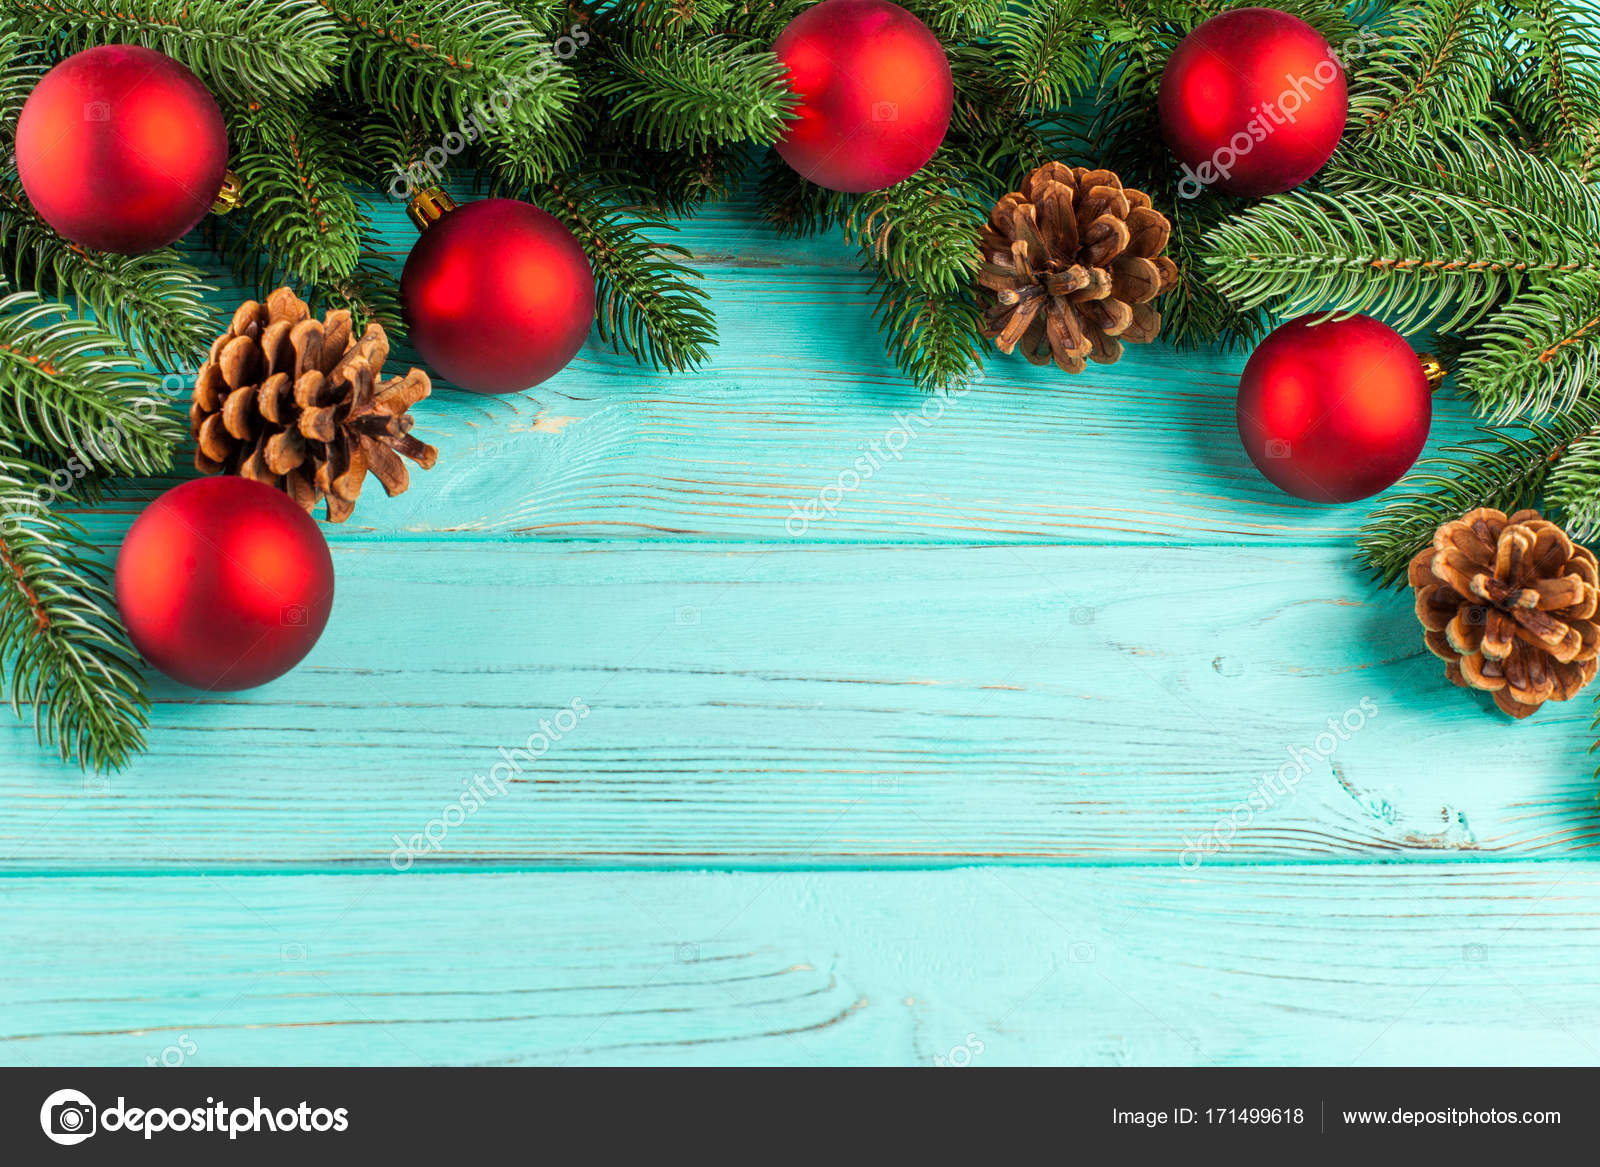 Christmas Banner With Green Tree Red And White Handmade Felt Decorations On White Wooden Textured Background Stock Photo Image By C Rojdesign 171499618